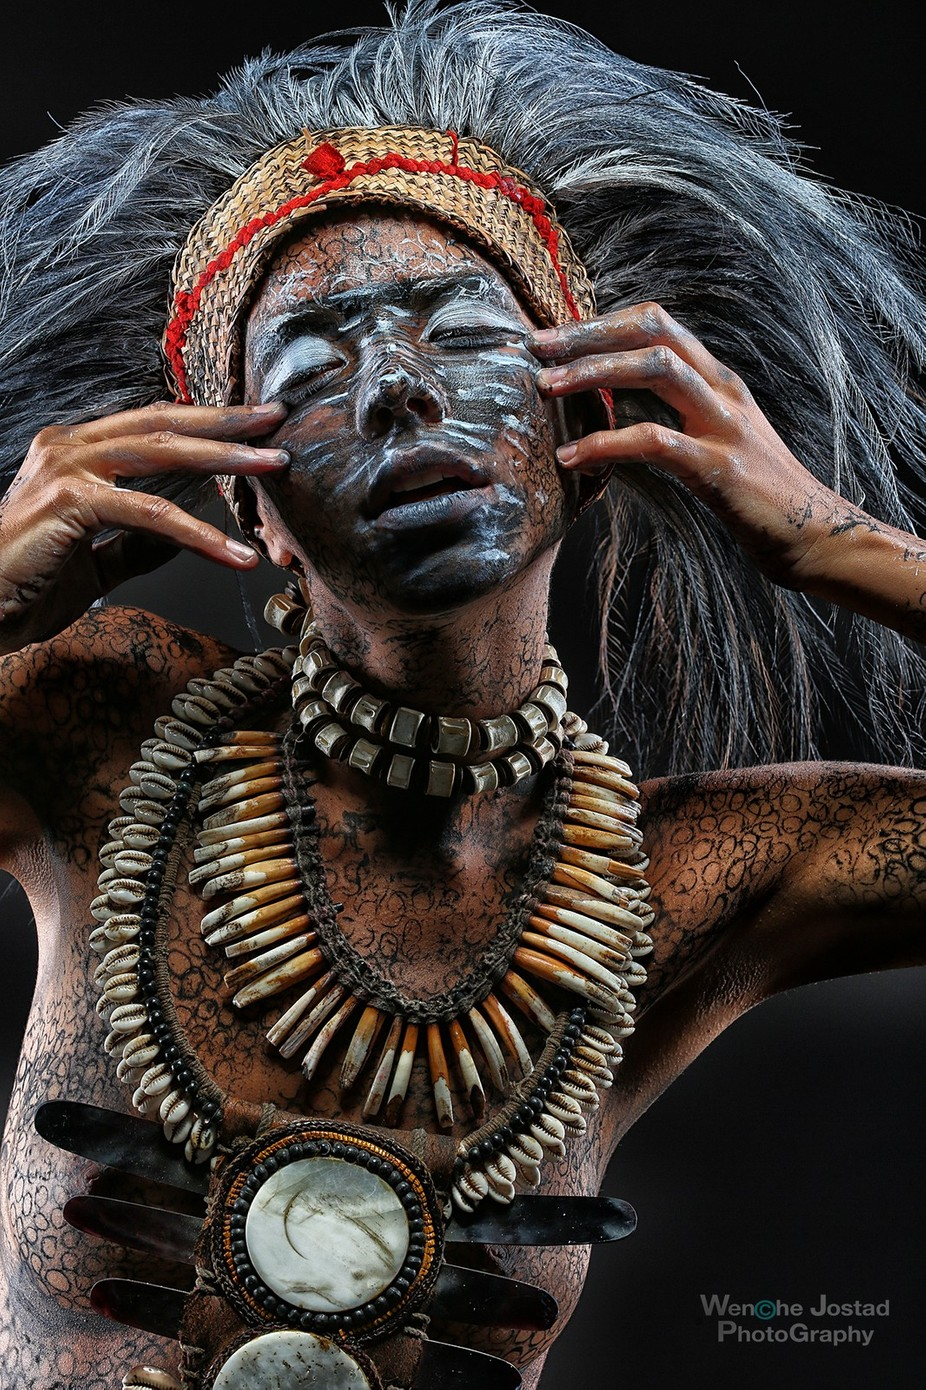 My Tribe by wenchejostad - Cultures of the World Photo Contest